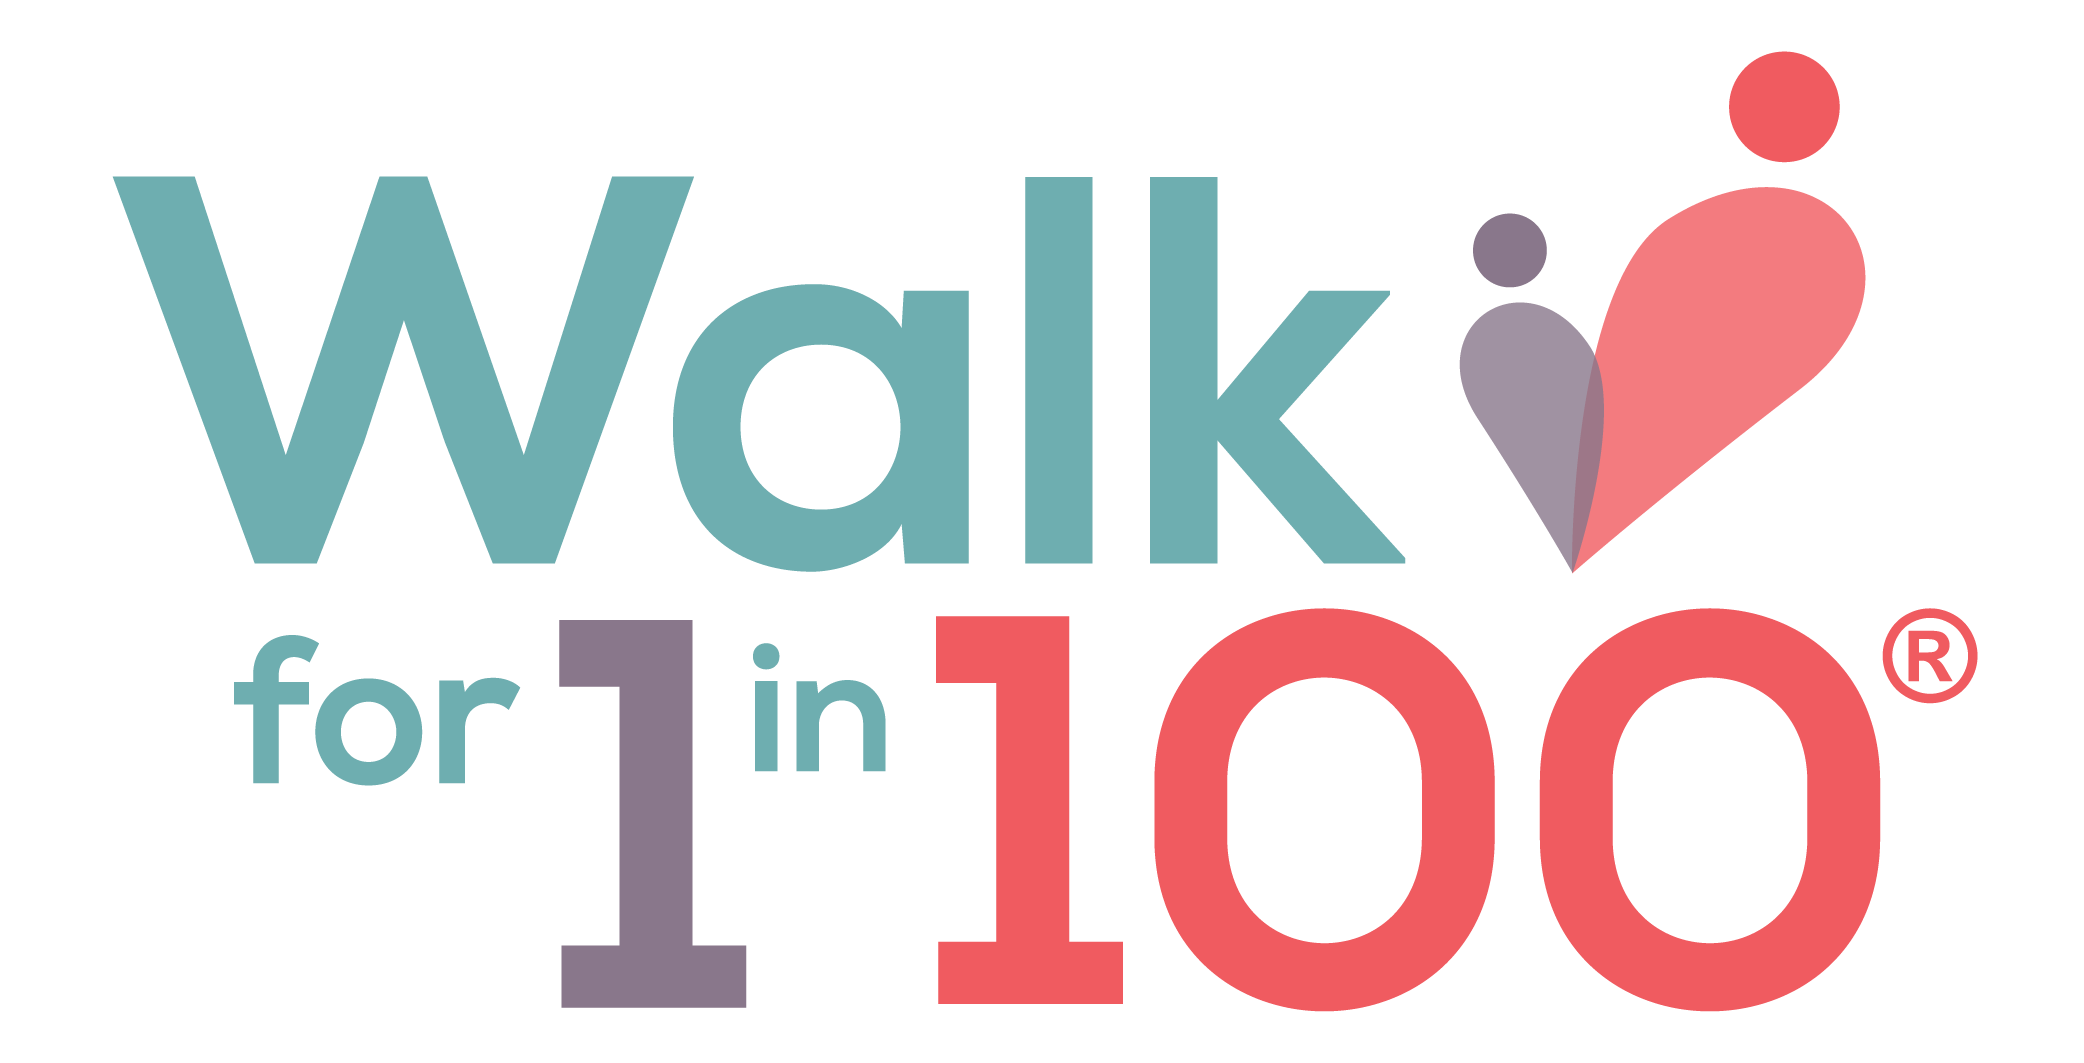 Walkfor1in100LogoACHA_11_2018.png